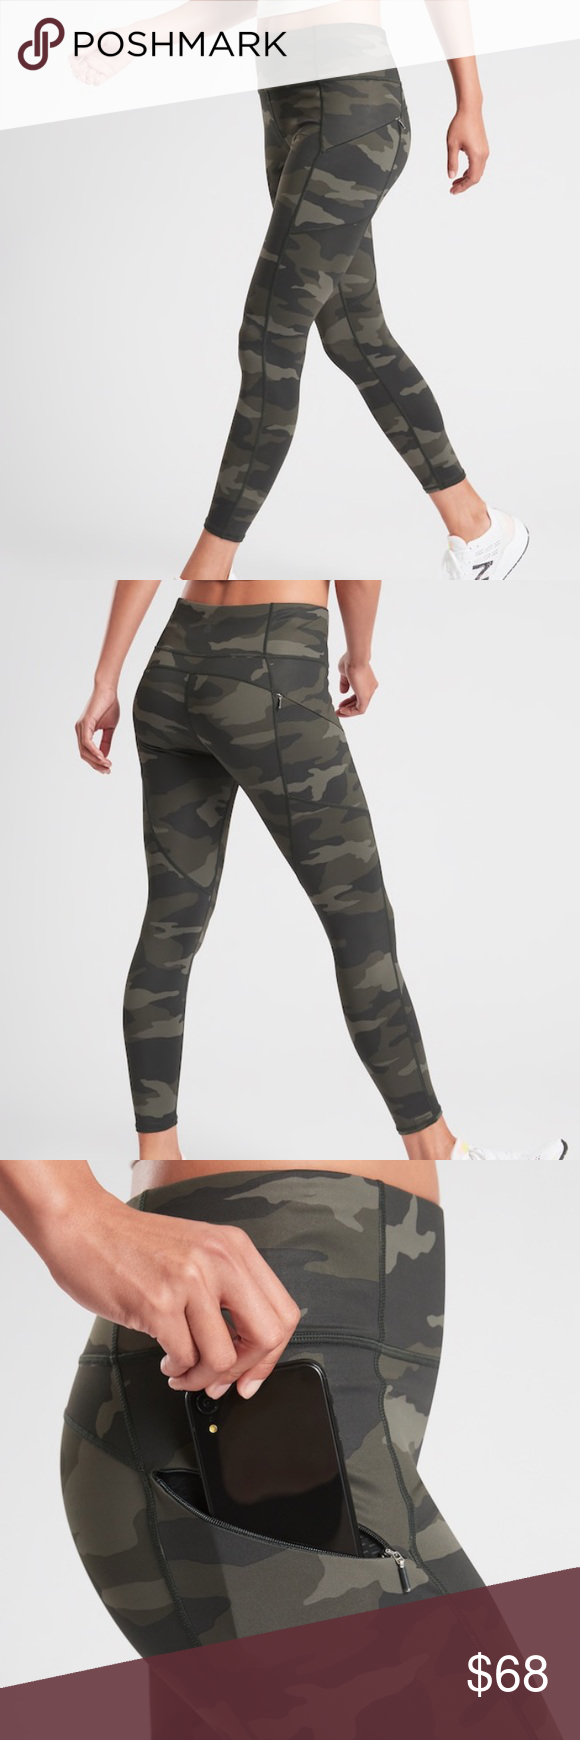 Photo of Athleta Camo Contender 7/8 Tight in Powerlift XS FOR: Medium and high impact wor…